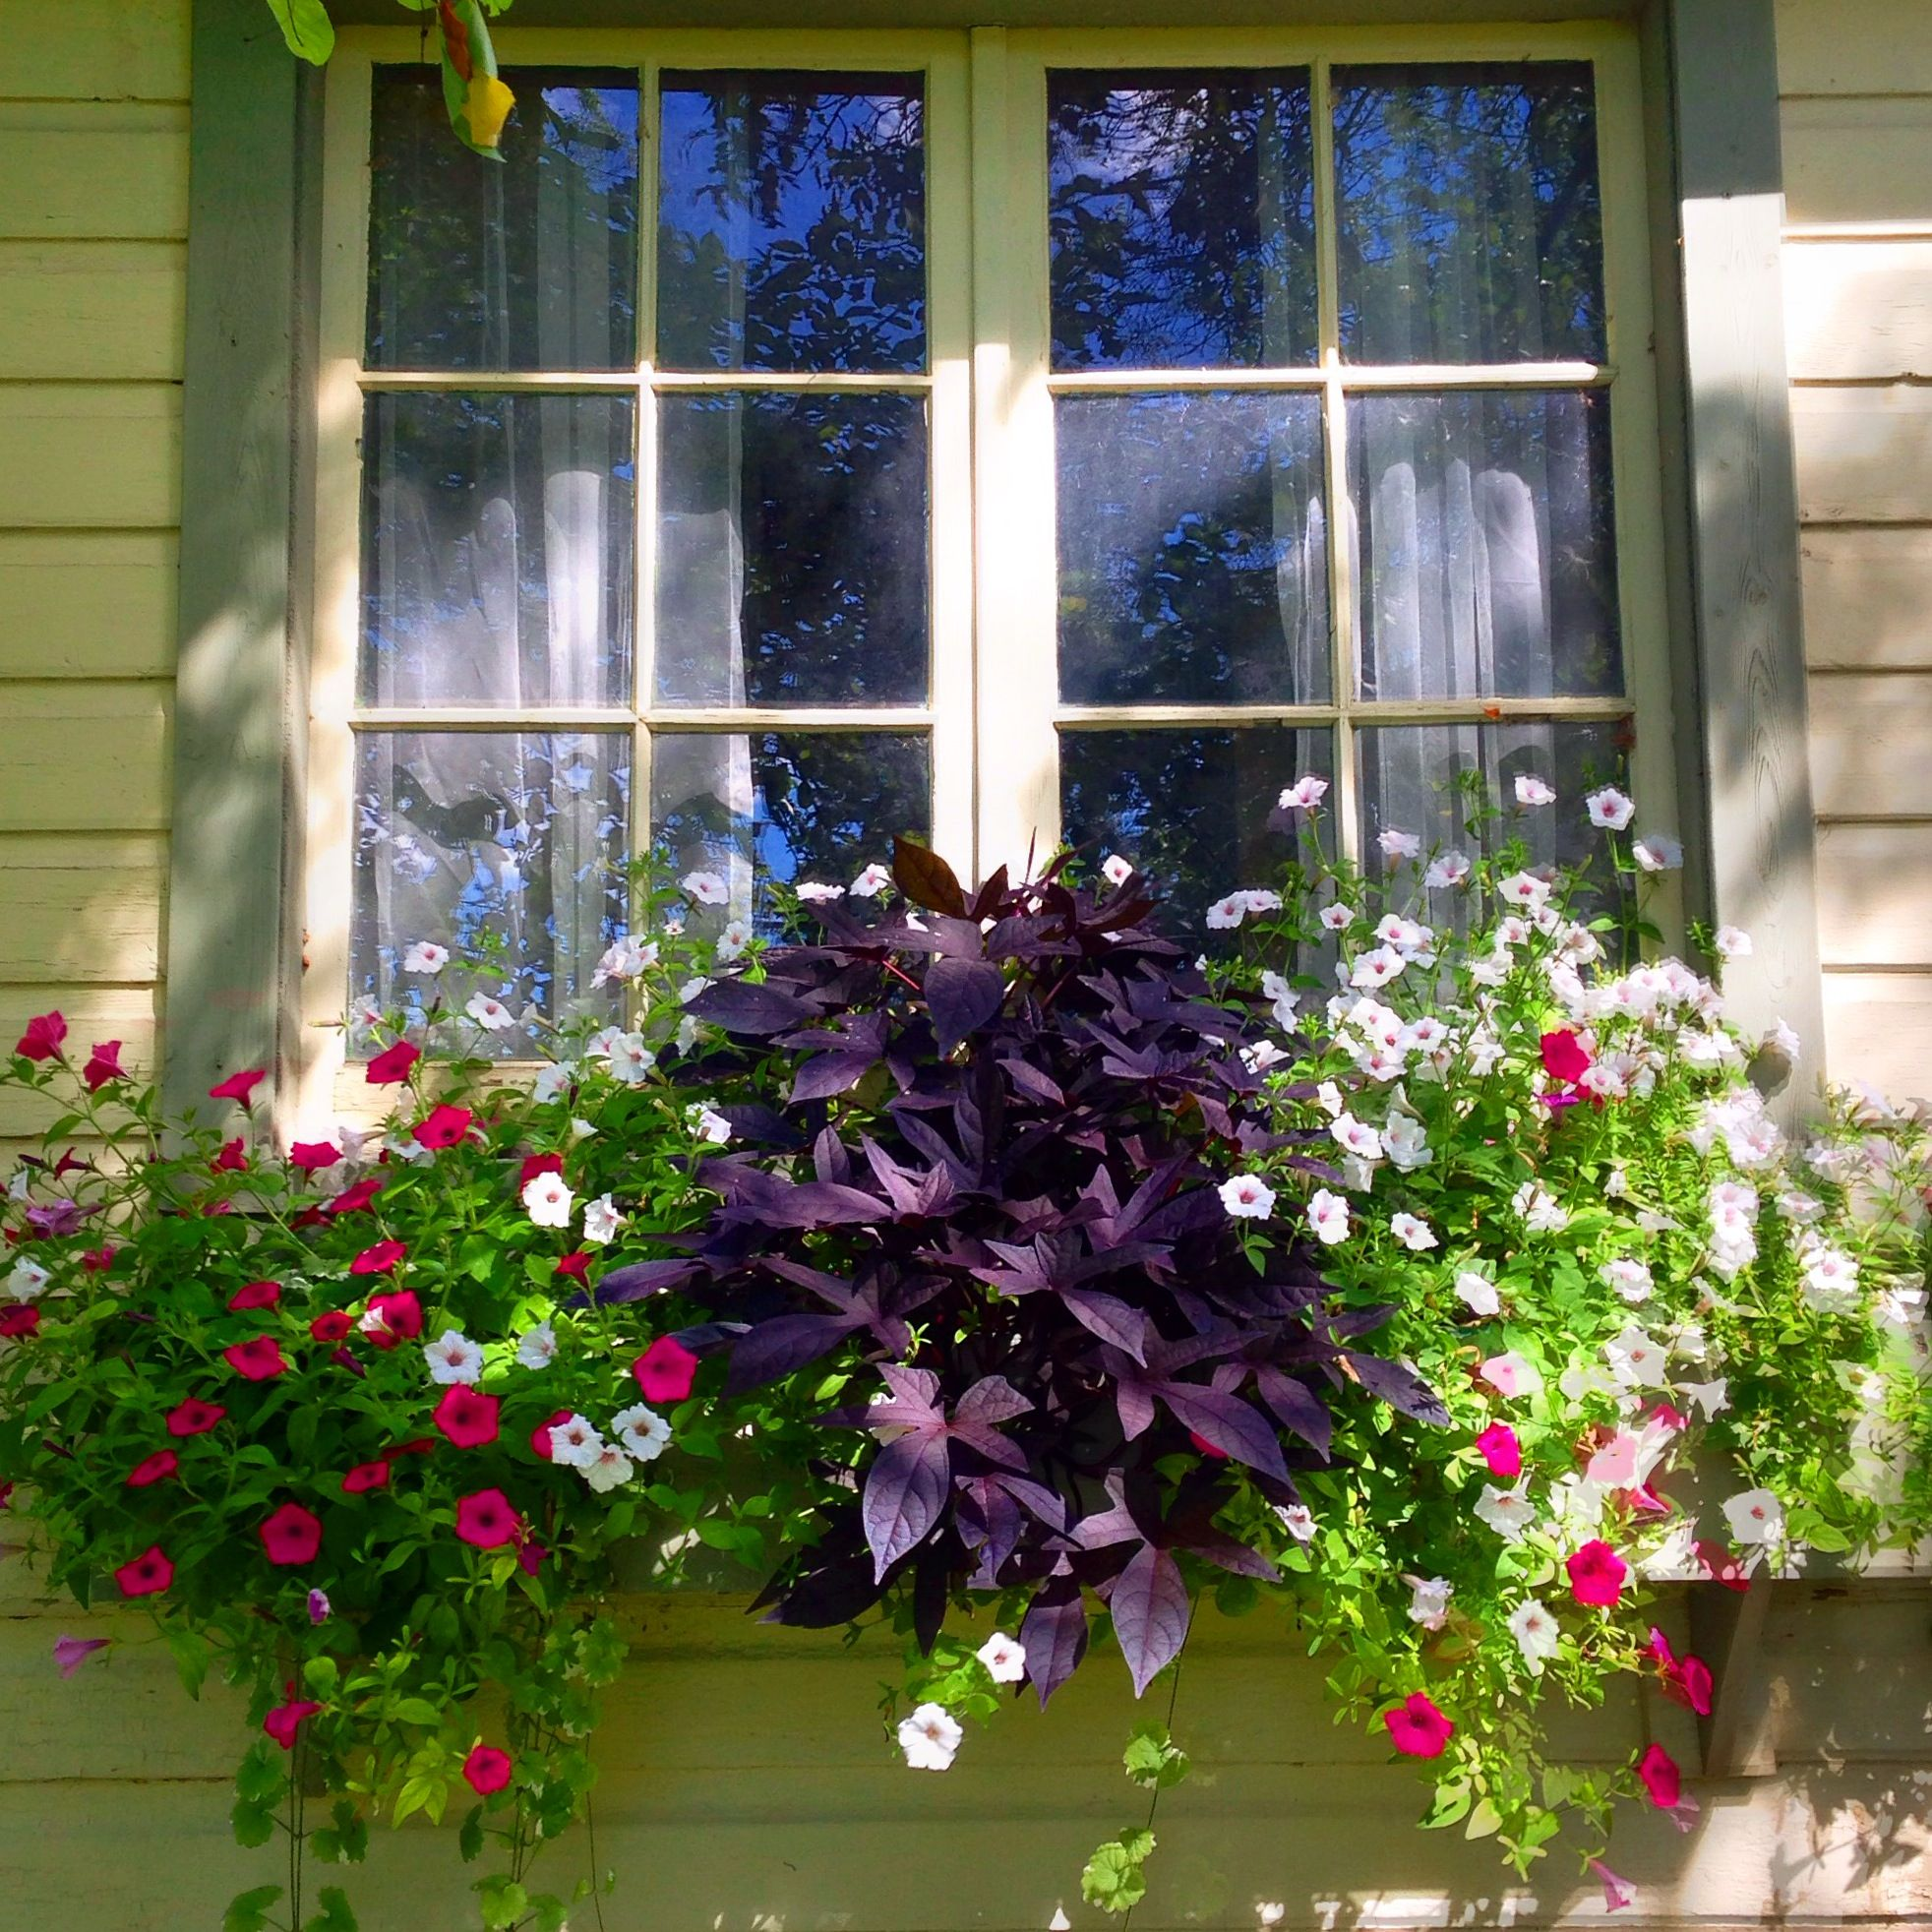 Window box ideas without flowers  cottage flower boxes  süleymanev için fikirler  pinterest  flower